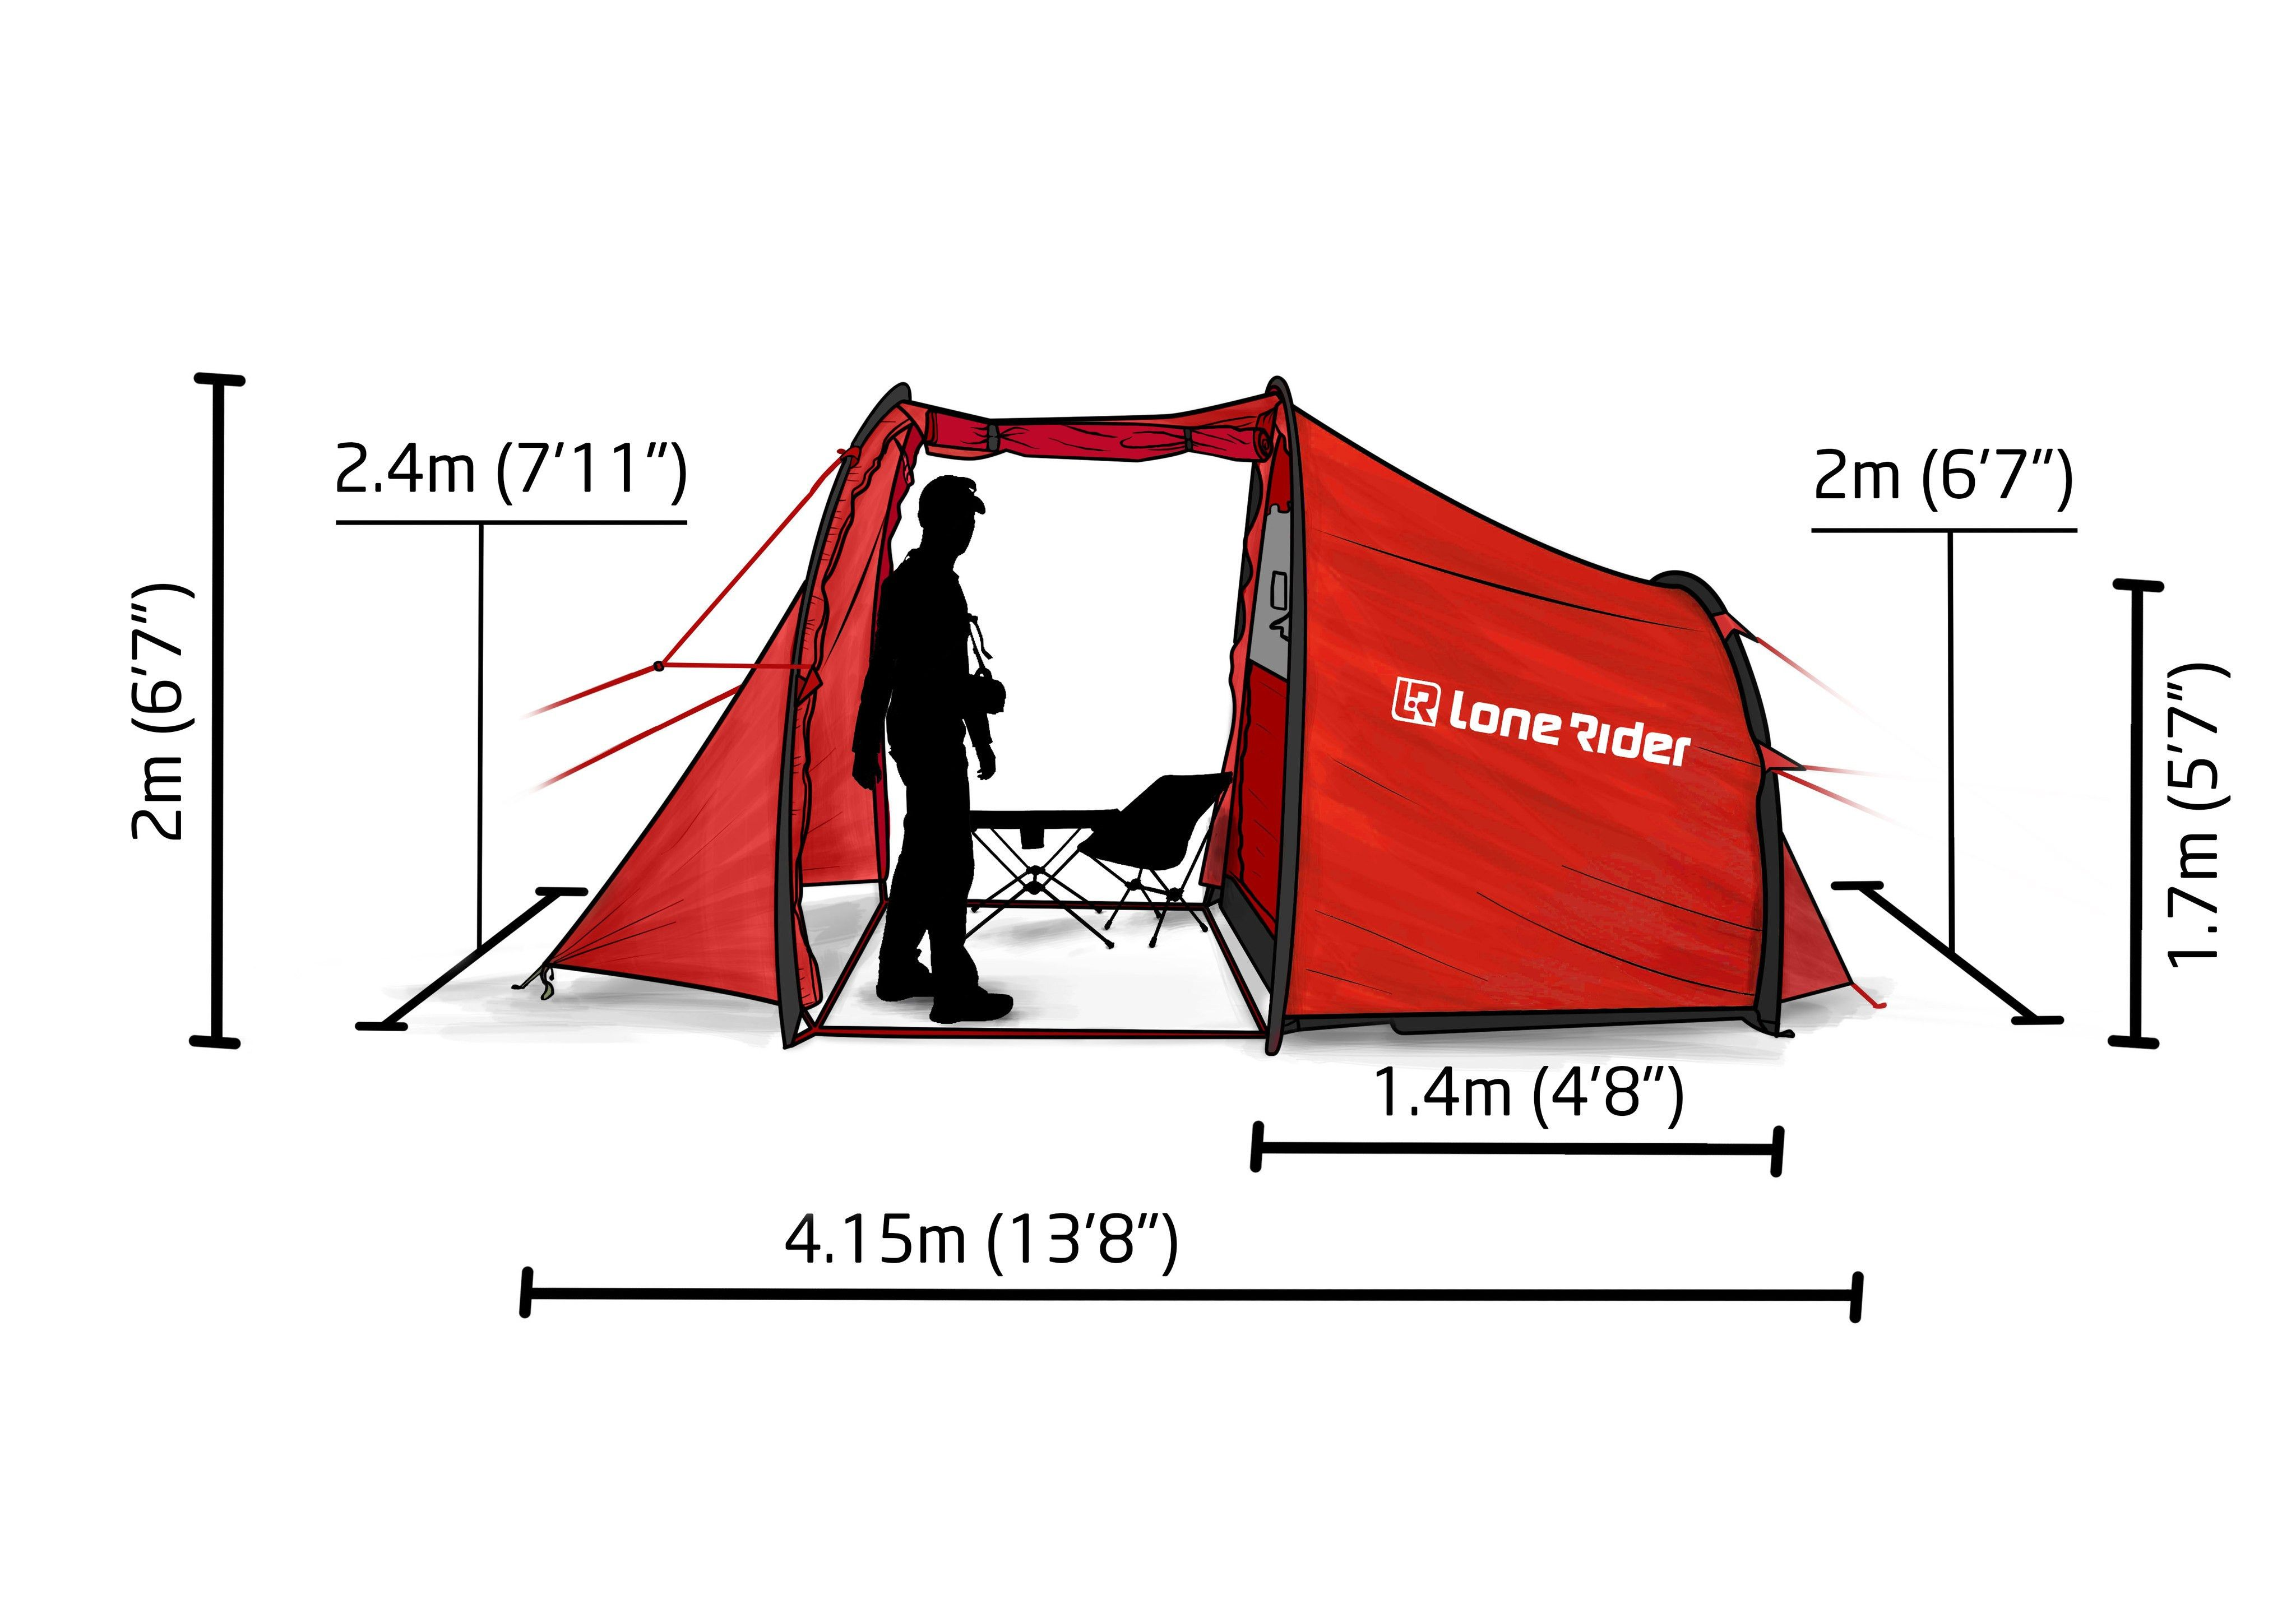 LONE RIDER The Motorcycle Tent MotoTent | Motocicleta | Pinterest | Tents  sc 1 st  Pinterest & LONE RIDER: The Motorcycle Tent MotoTent | Motocicleta | Pinterest ...